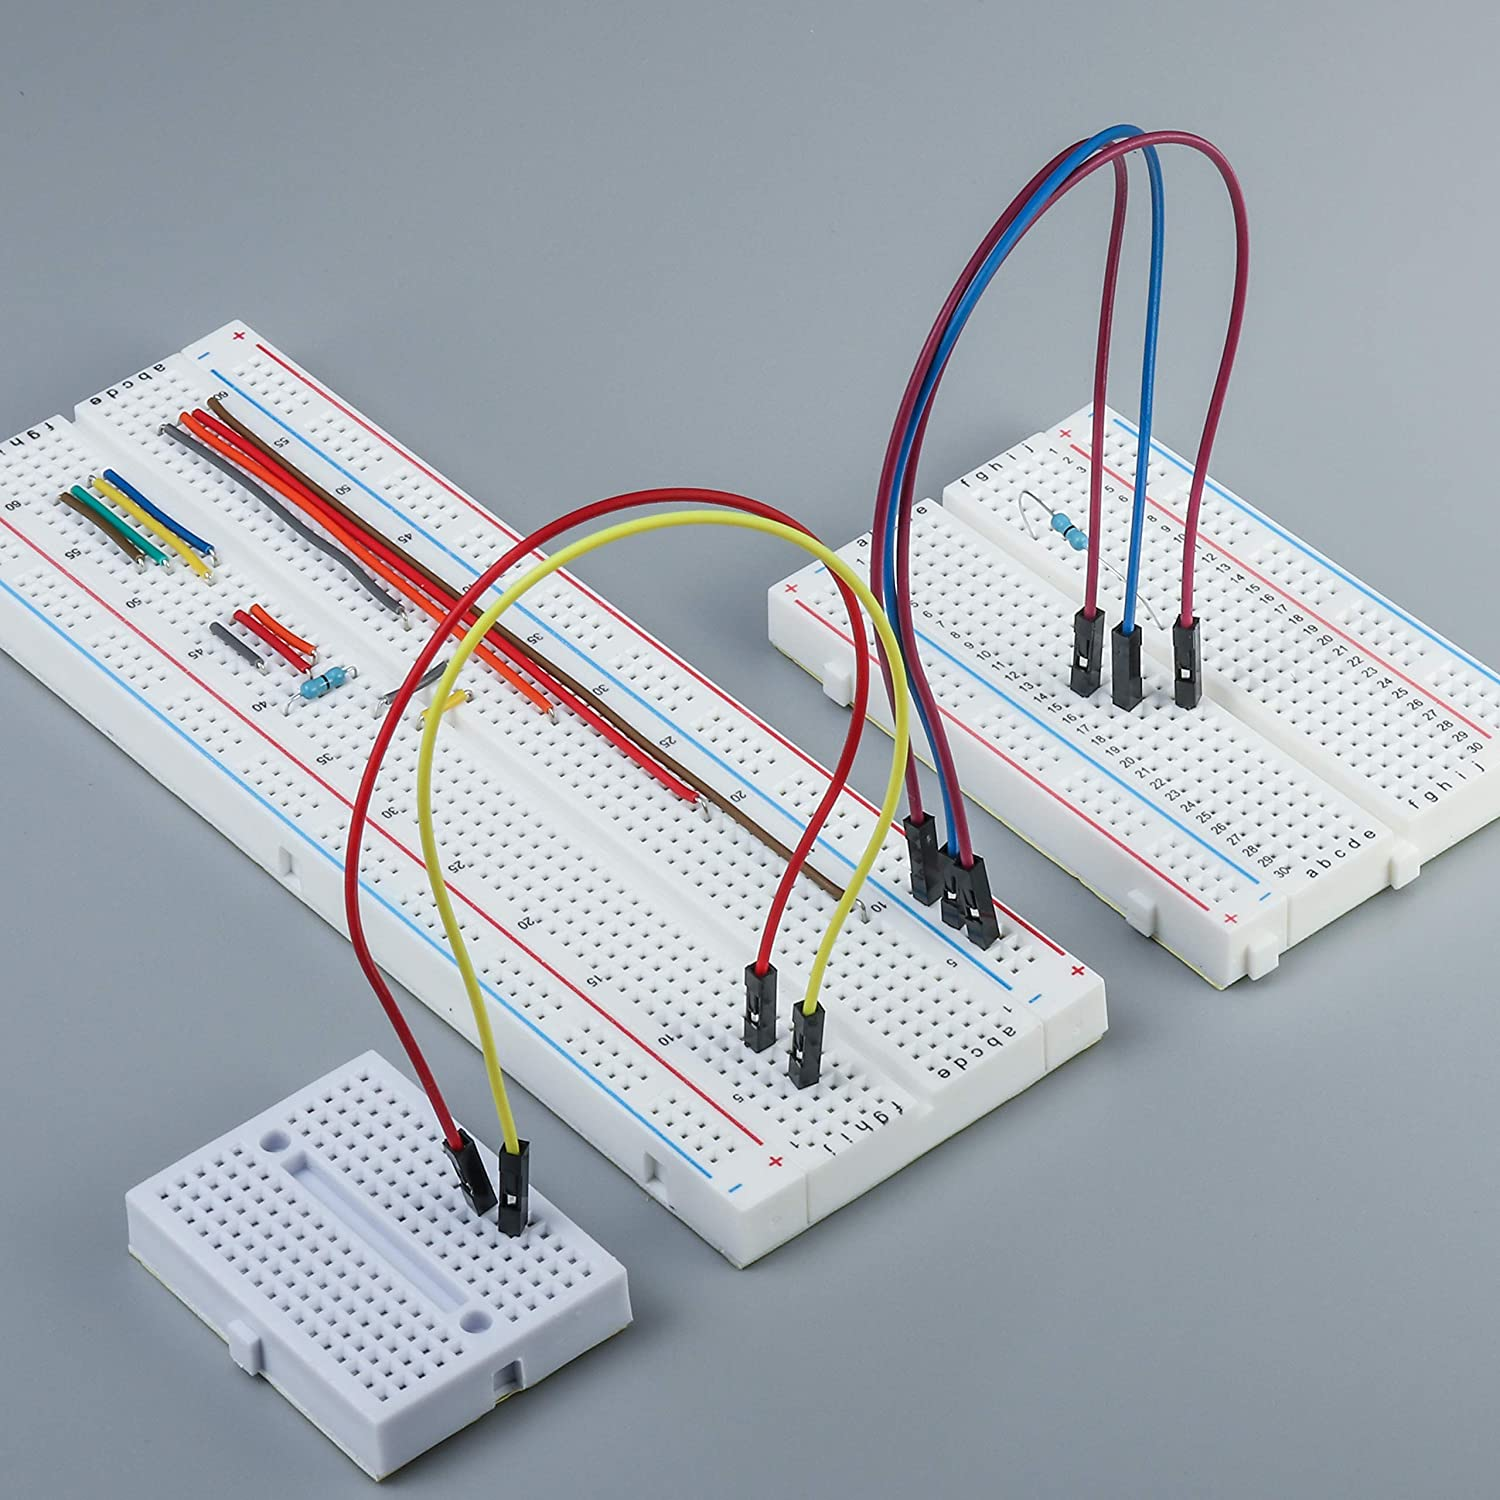 M//M M//F Multicolored Breadboard Dupont Jumper Wires F//F Male to Female for Arduino and Raspberry Pi ALLUS J7011 120Pcs 3in1 Ribbon Cables Kit Male to Male Female to Female